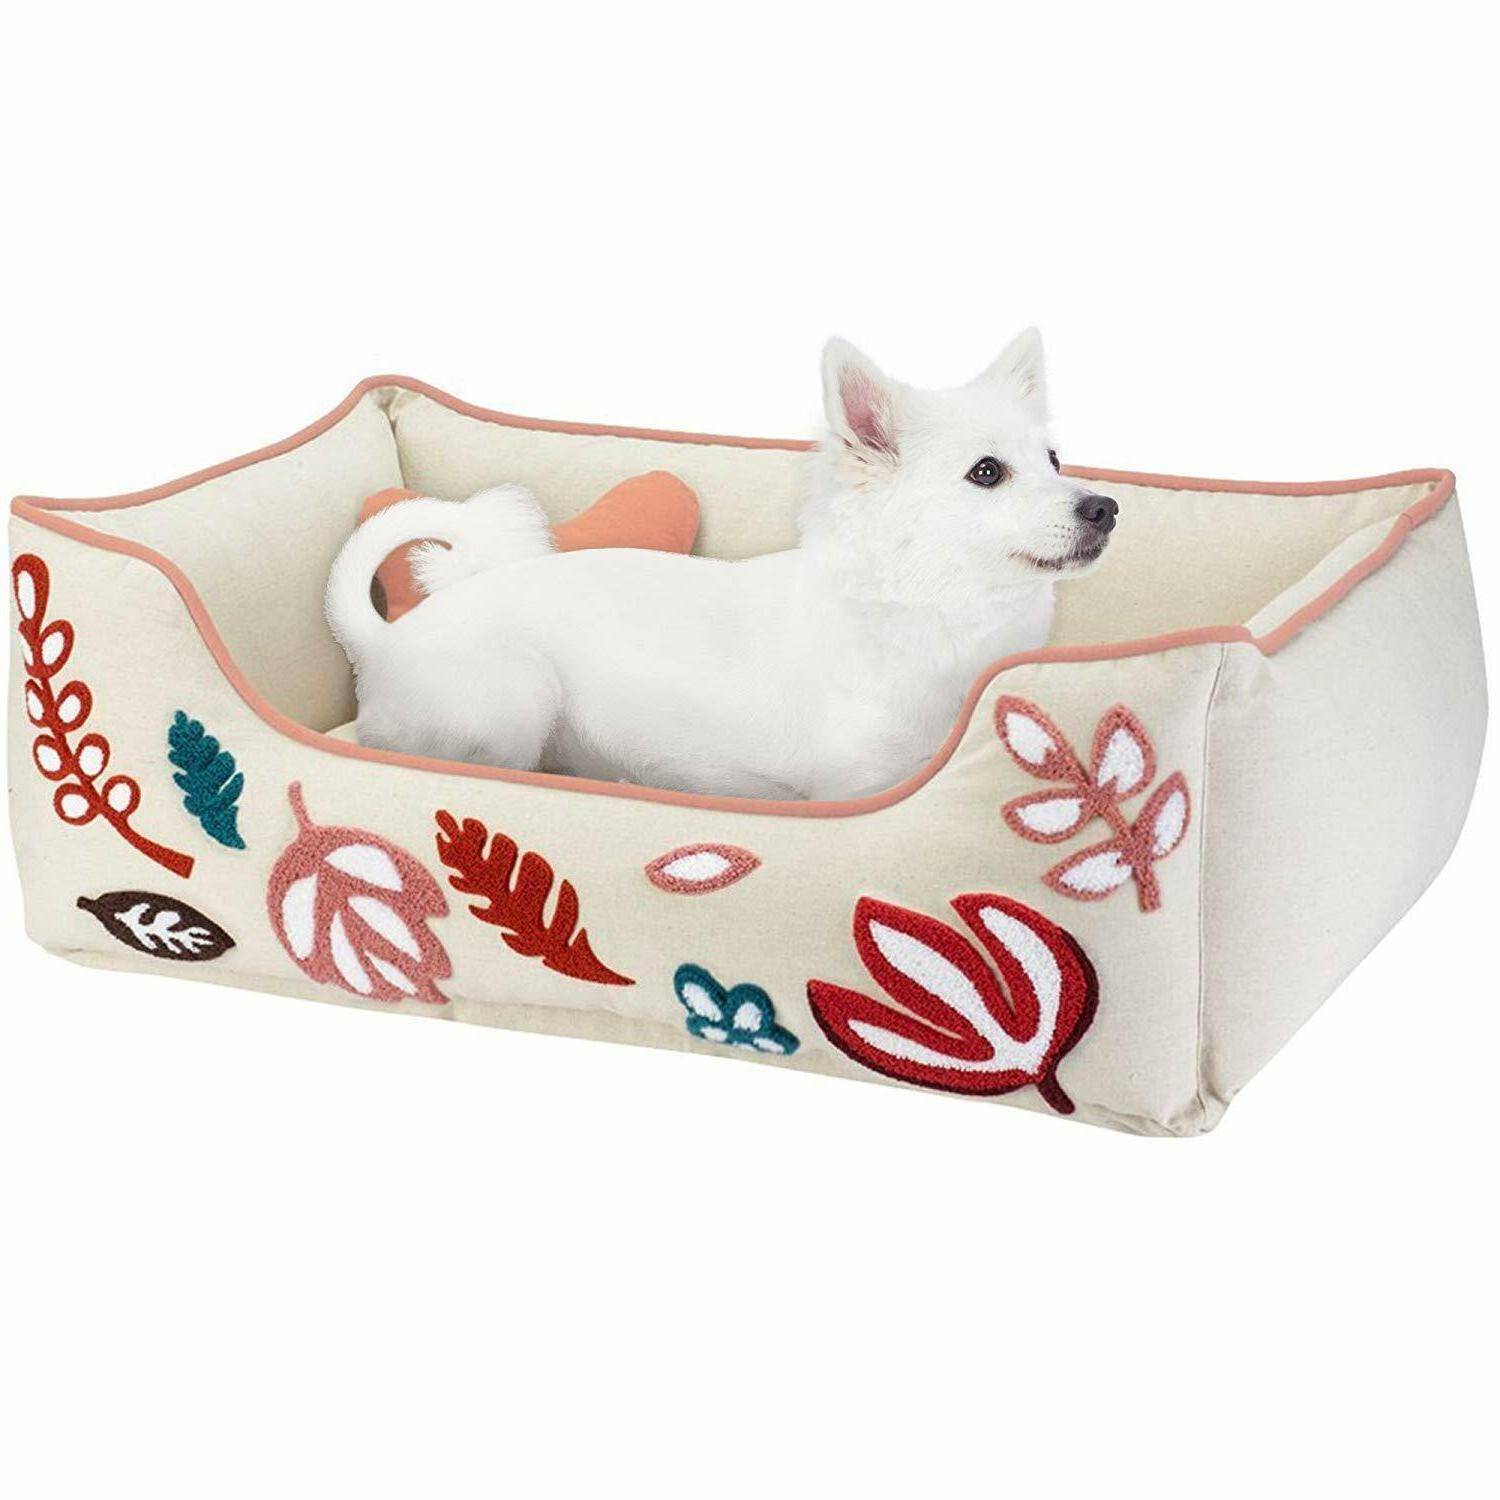 dog bed medium canvas bed pink